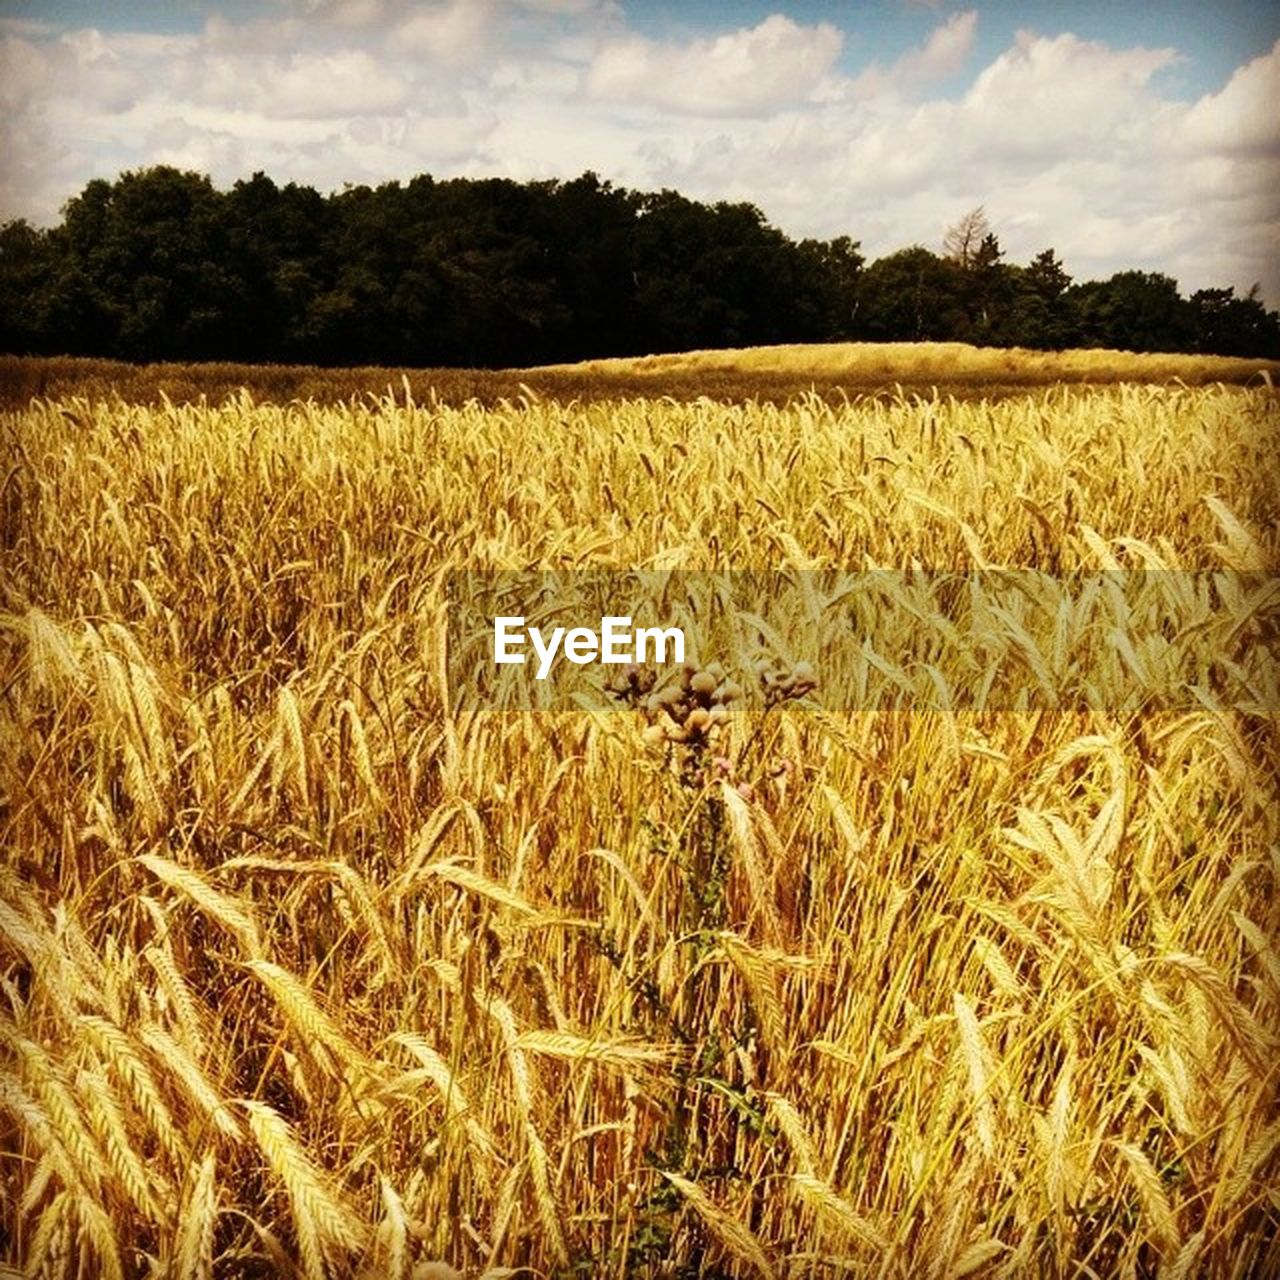 field, agriculture, growth, nature, landscape, sky, tranquility, crop, outdoors, no people, beauty in nature, tranquil scene, plant, scenics, tree, wheat, rural scene, cereal plant, day